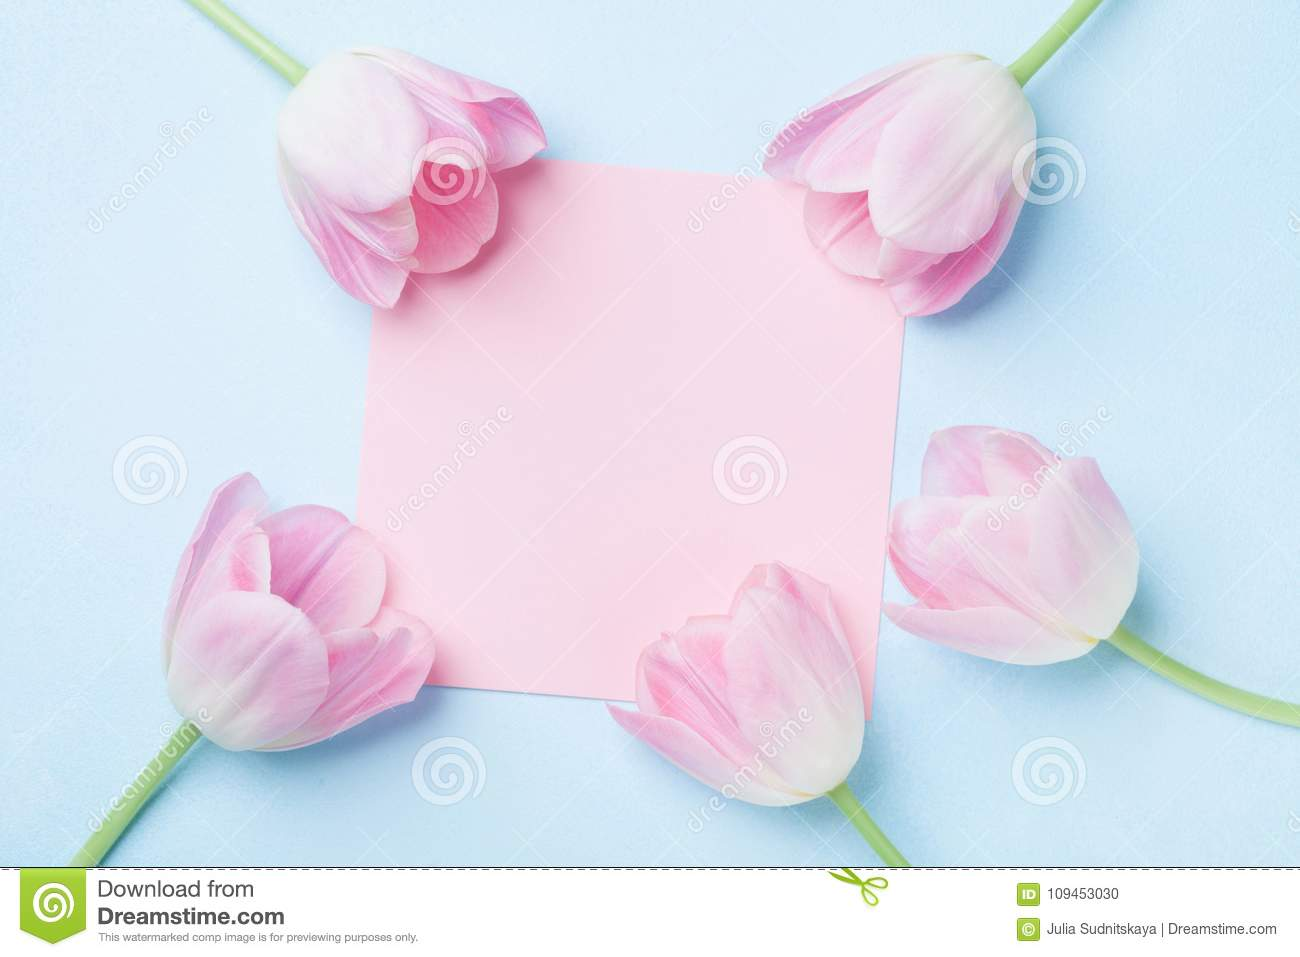 Wedding mockup with pink paper list and tulip flowers on blue table download wedding mockup with pink paper list and tulip flowers on blue table top view izmirmasajfo